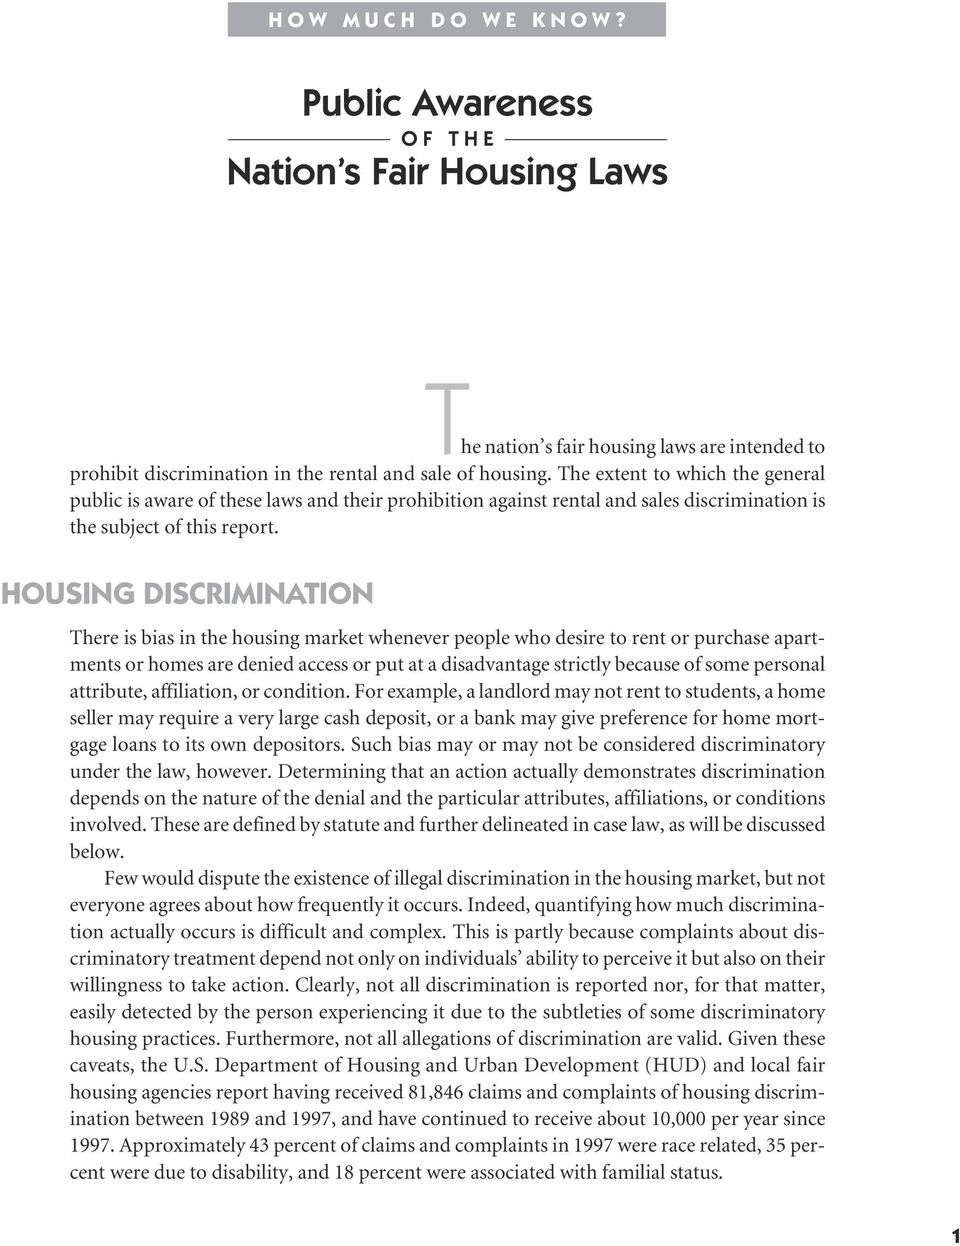 HOUSING DISCRIMINATION There is bias in the housing market whenever people who desire to rent or purchase apartments or homes are denied access or put at a disadvantage strictly because of some